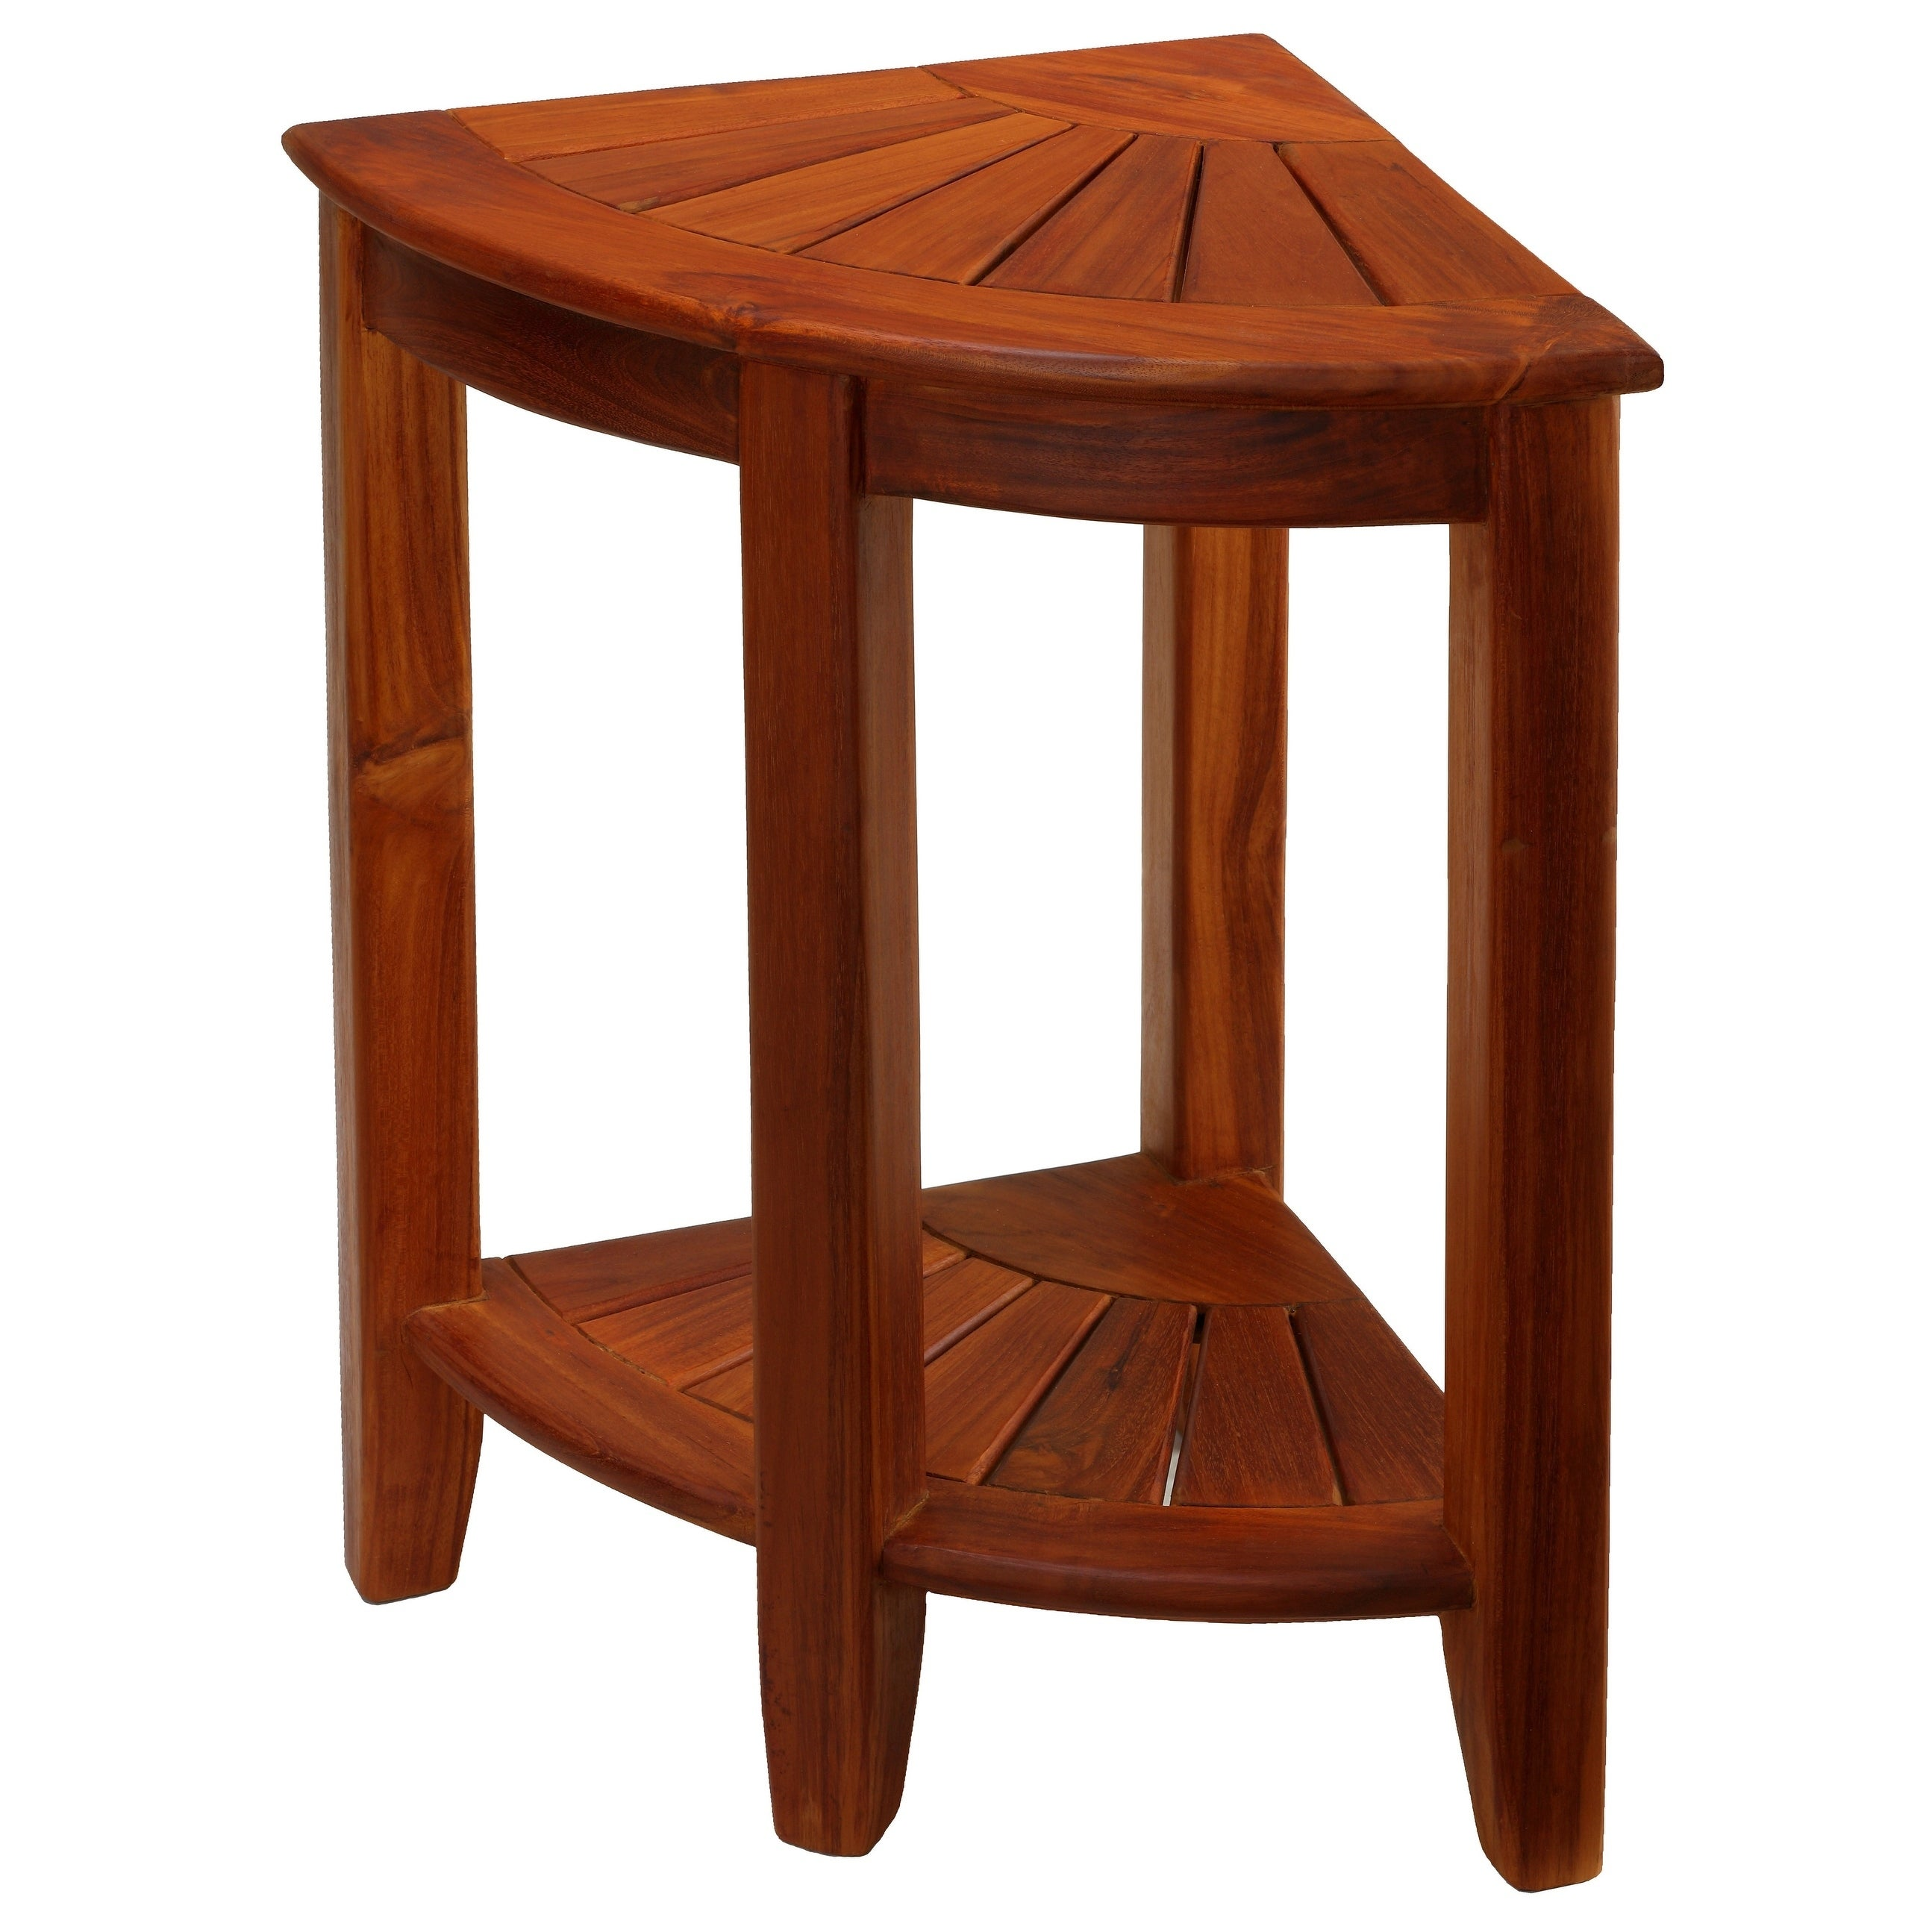 Bare Decor Elana Tall Corner Spa Shower Stool in Solid Teak Wood, 24 ...